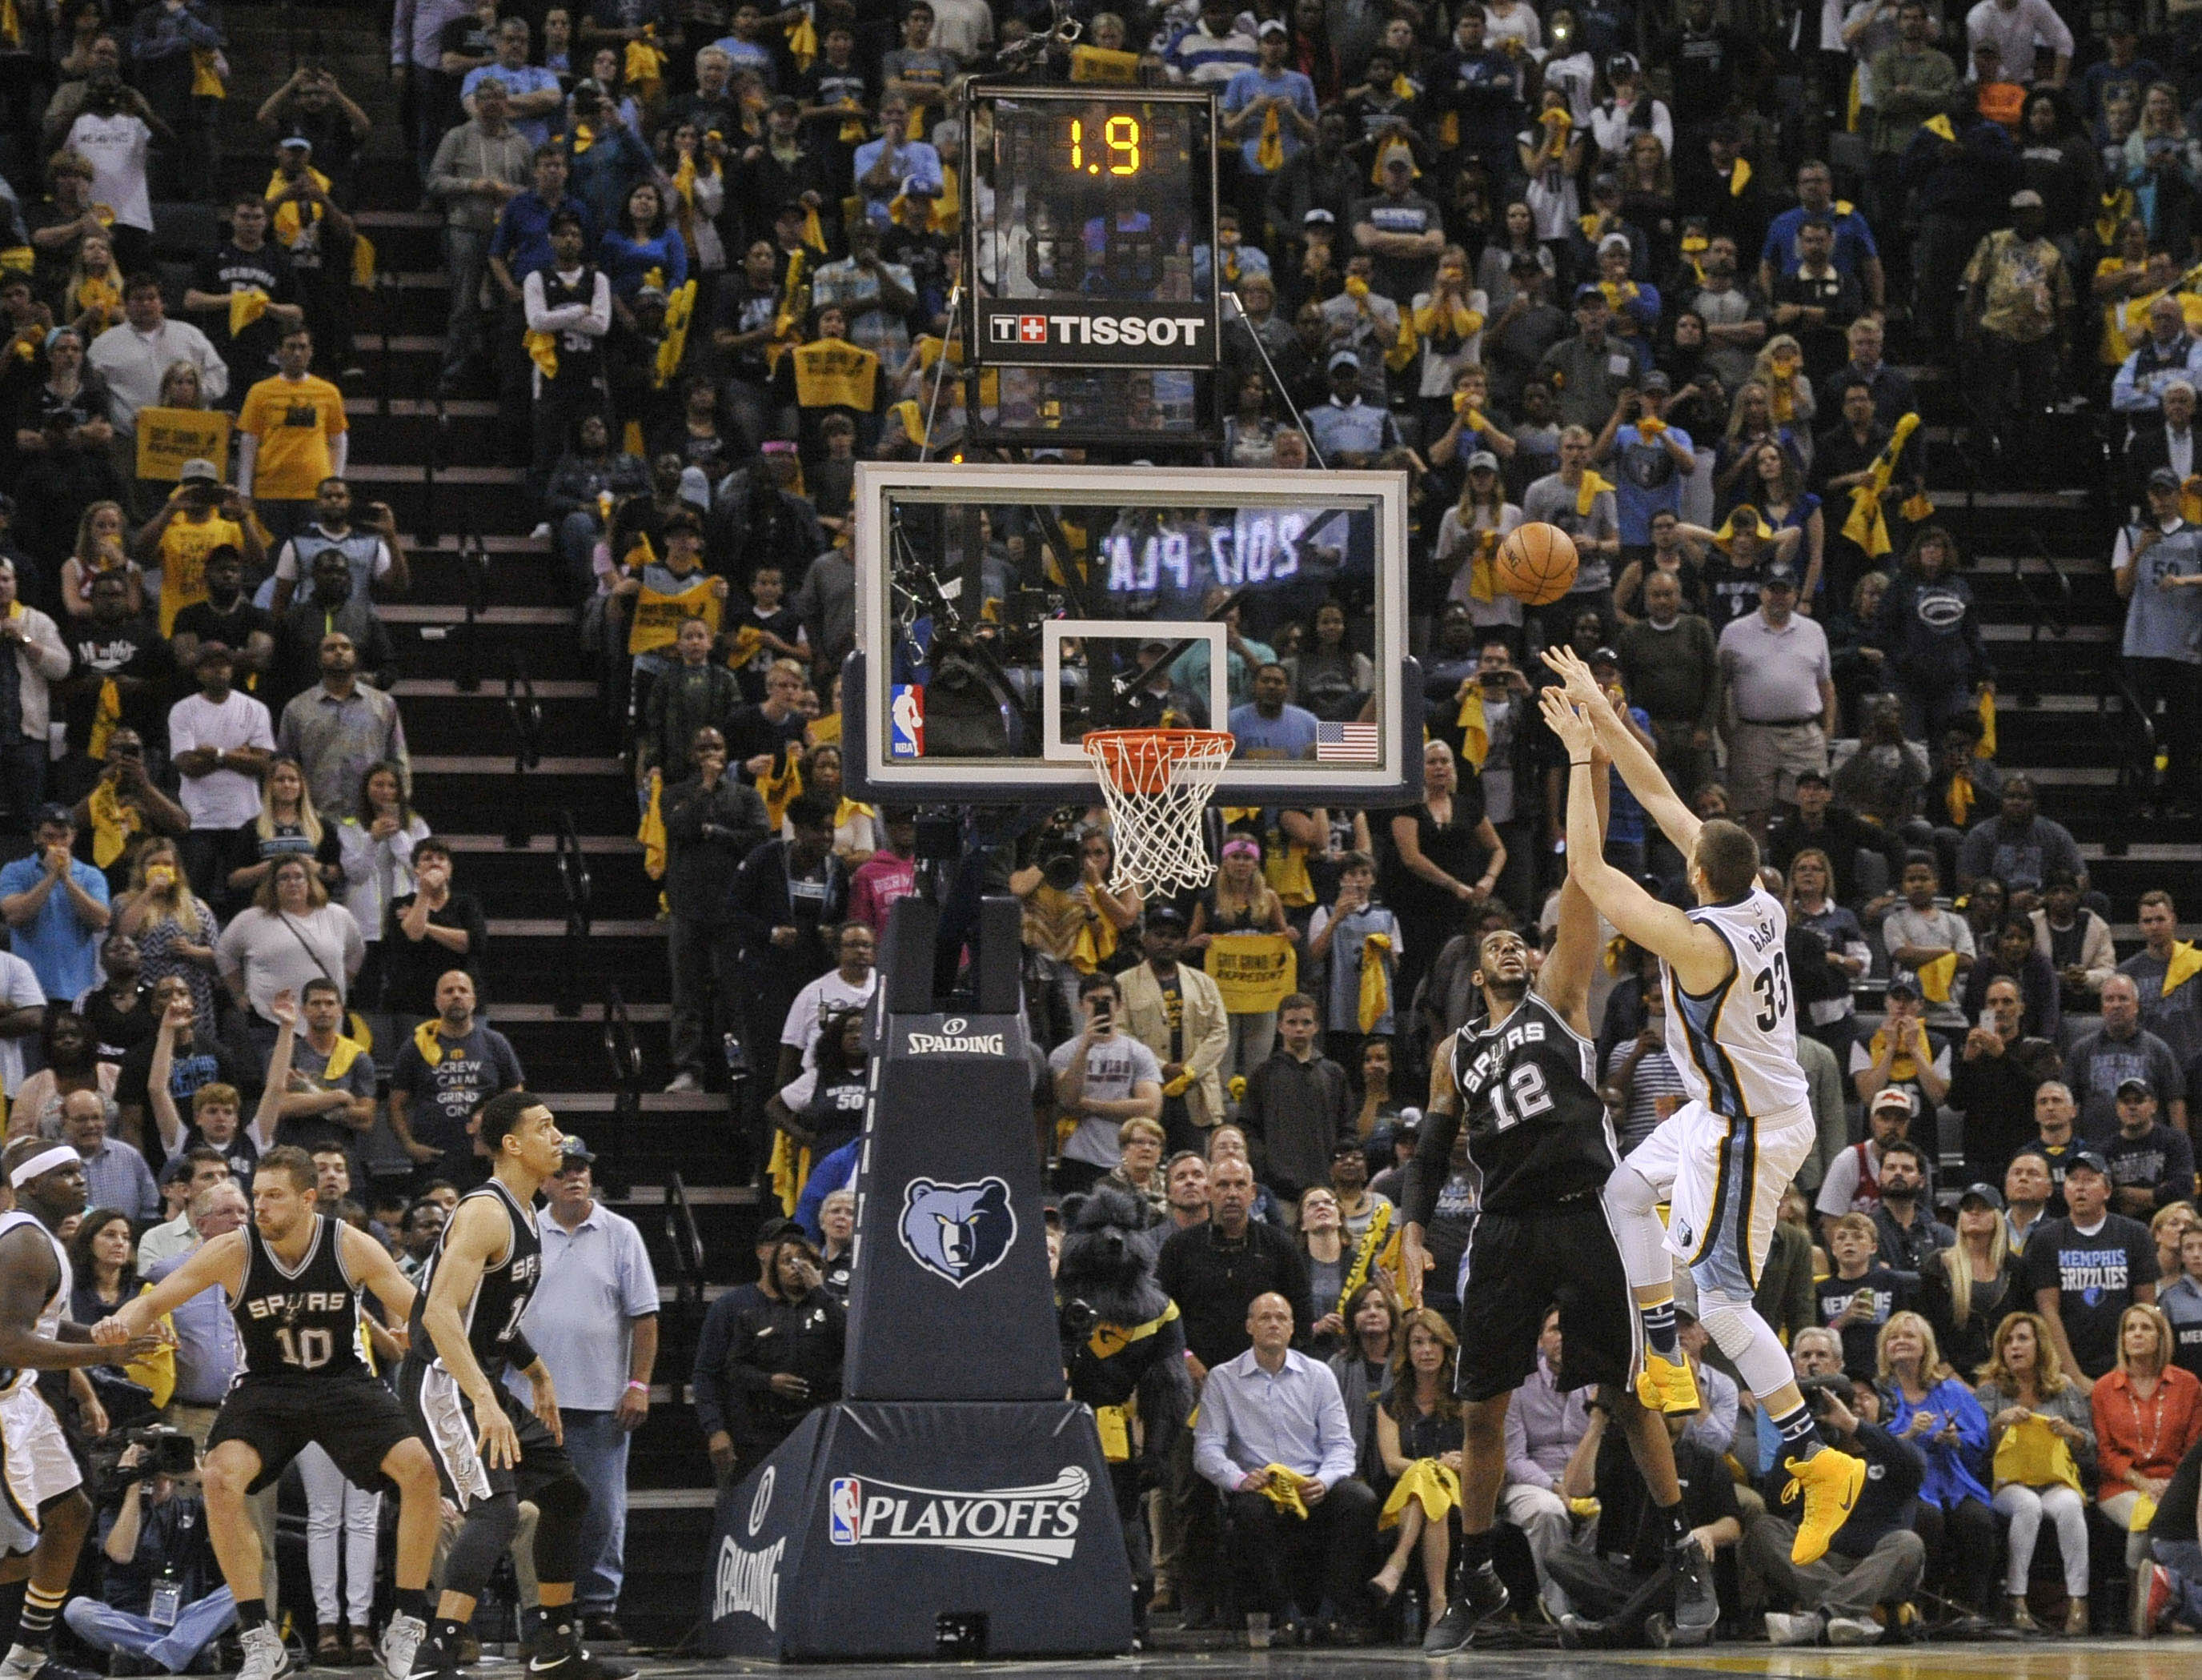 10026514-nba-playoffs-san-antonio-spurs-at-memphis-grizzlies-1